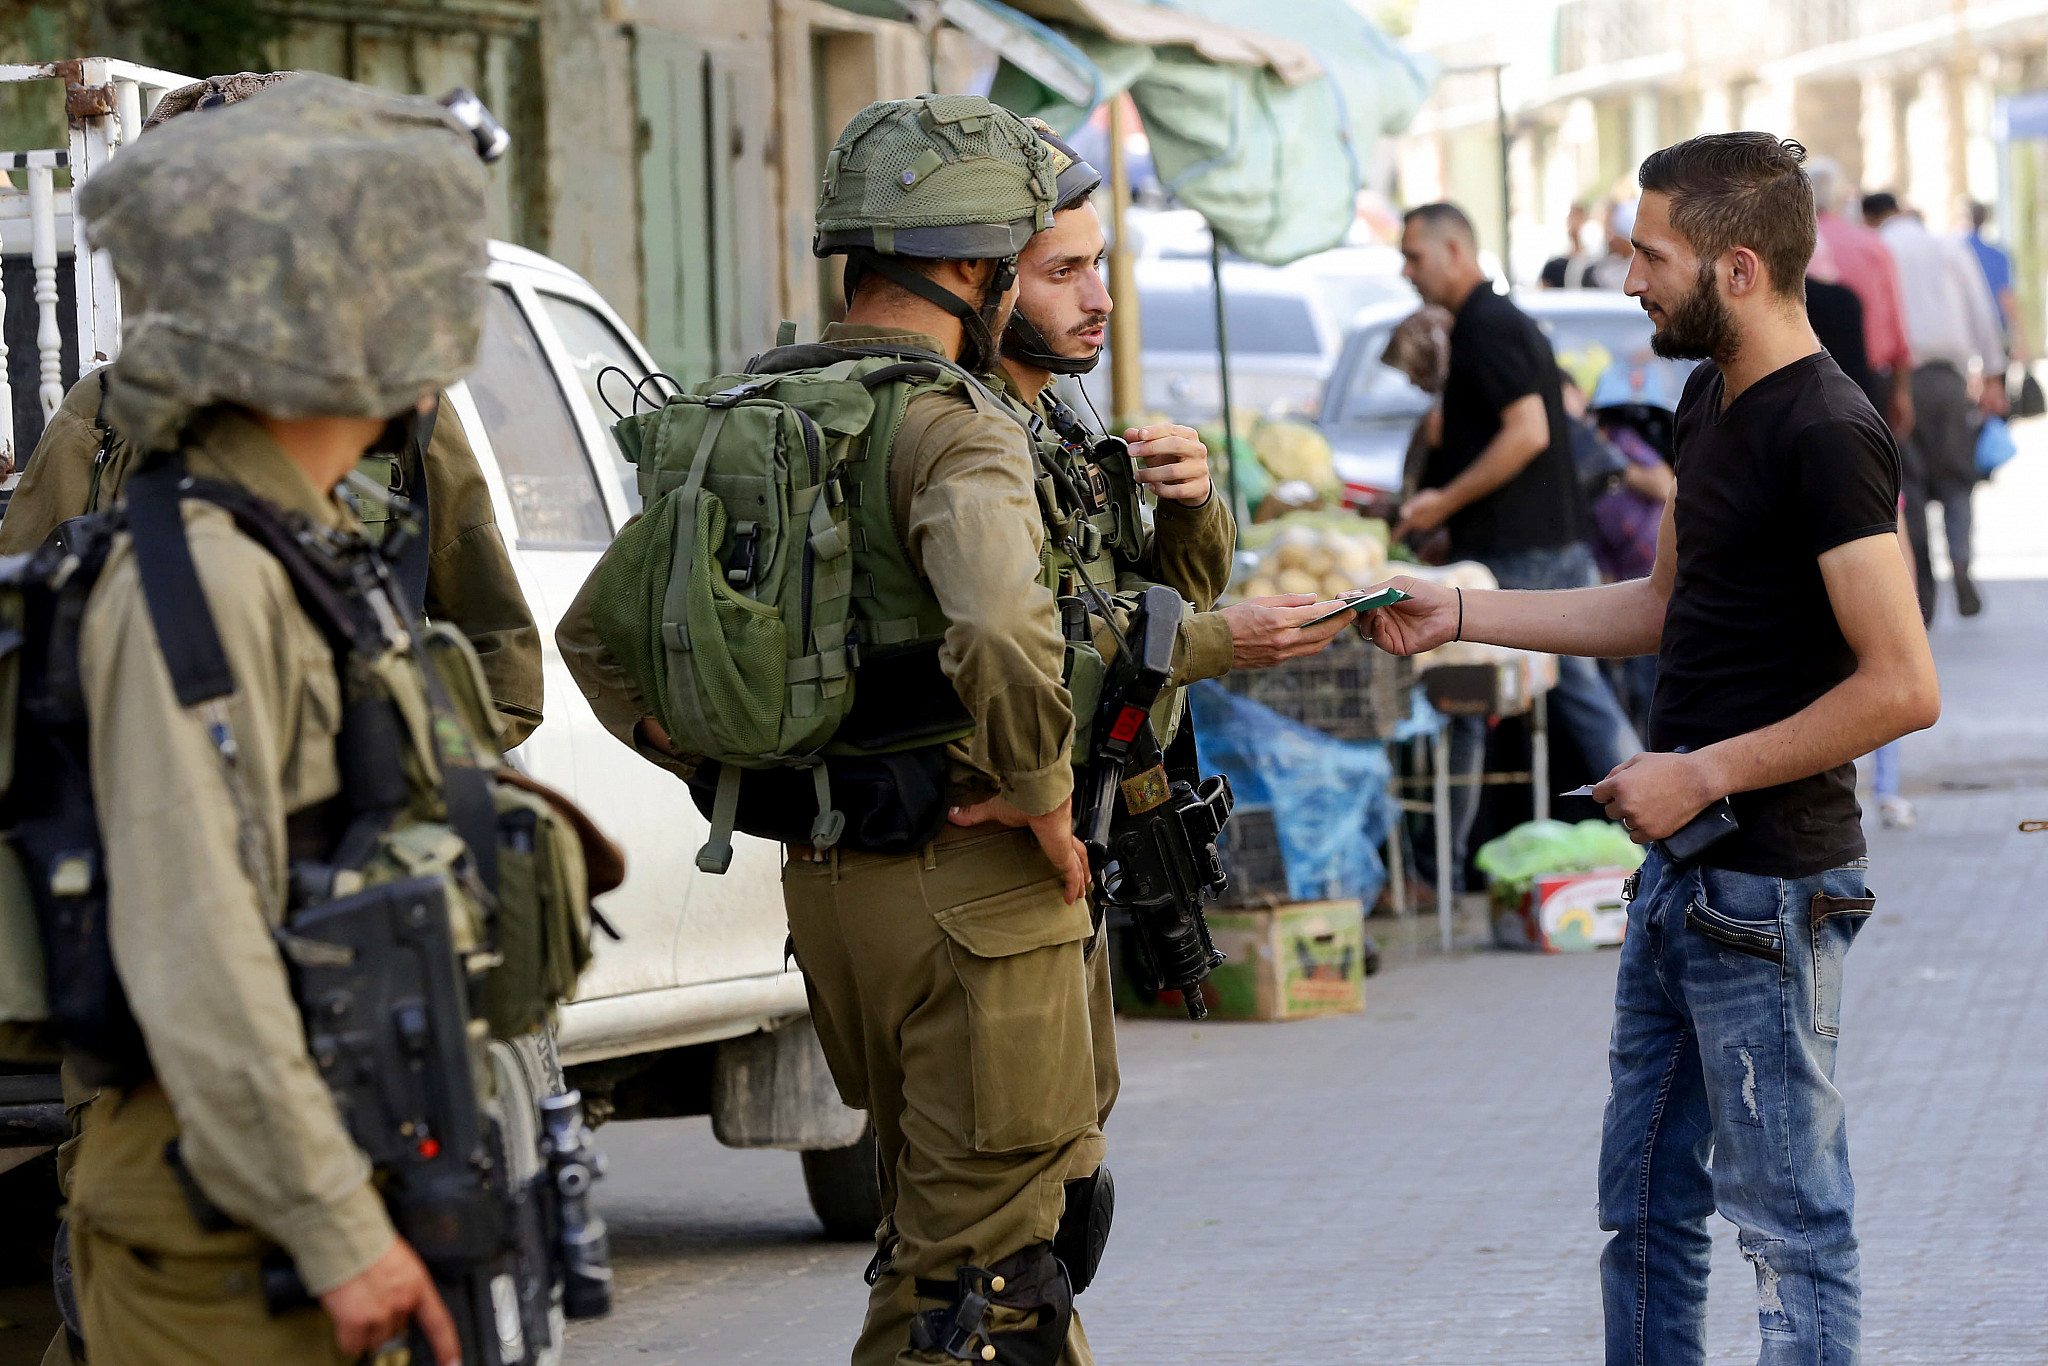 An Israeli soldier checks the ID of a Palestinian man in the West Bank city of Hebron, June 19, 2017. (Wisam Hashlamoun/Flash90)